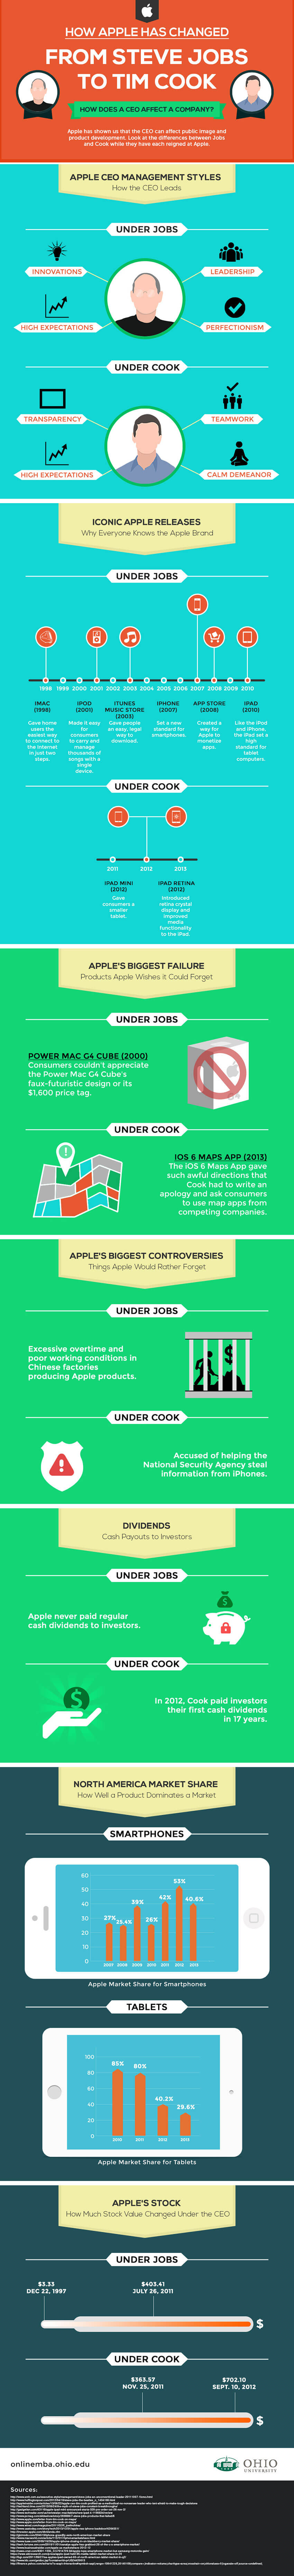 Apple CEO Leadership Infographic